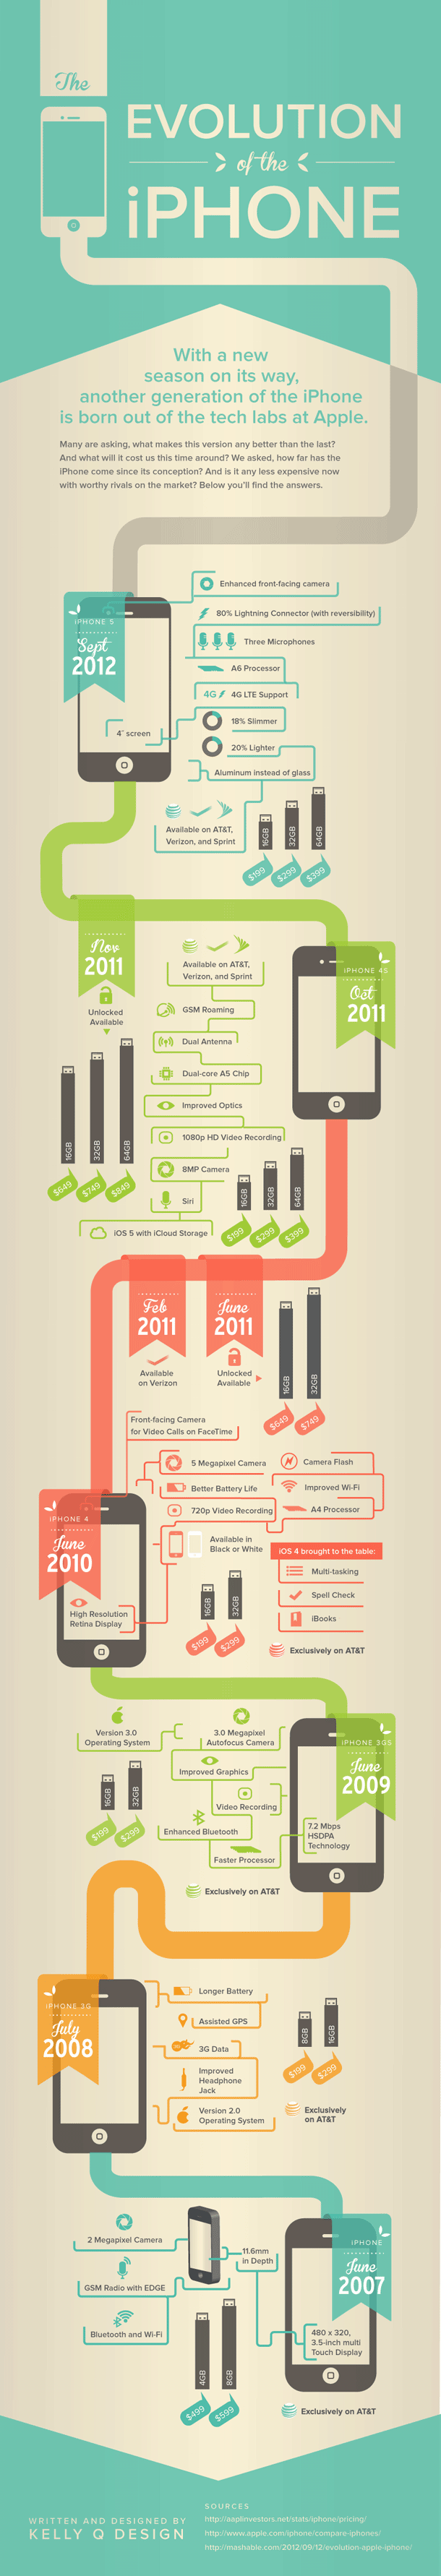 Evolution of the iPhone (Infographic)